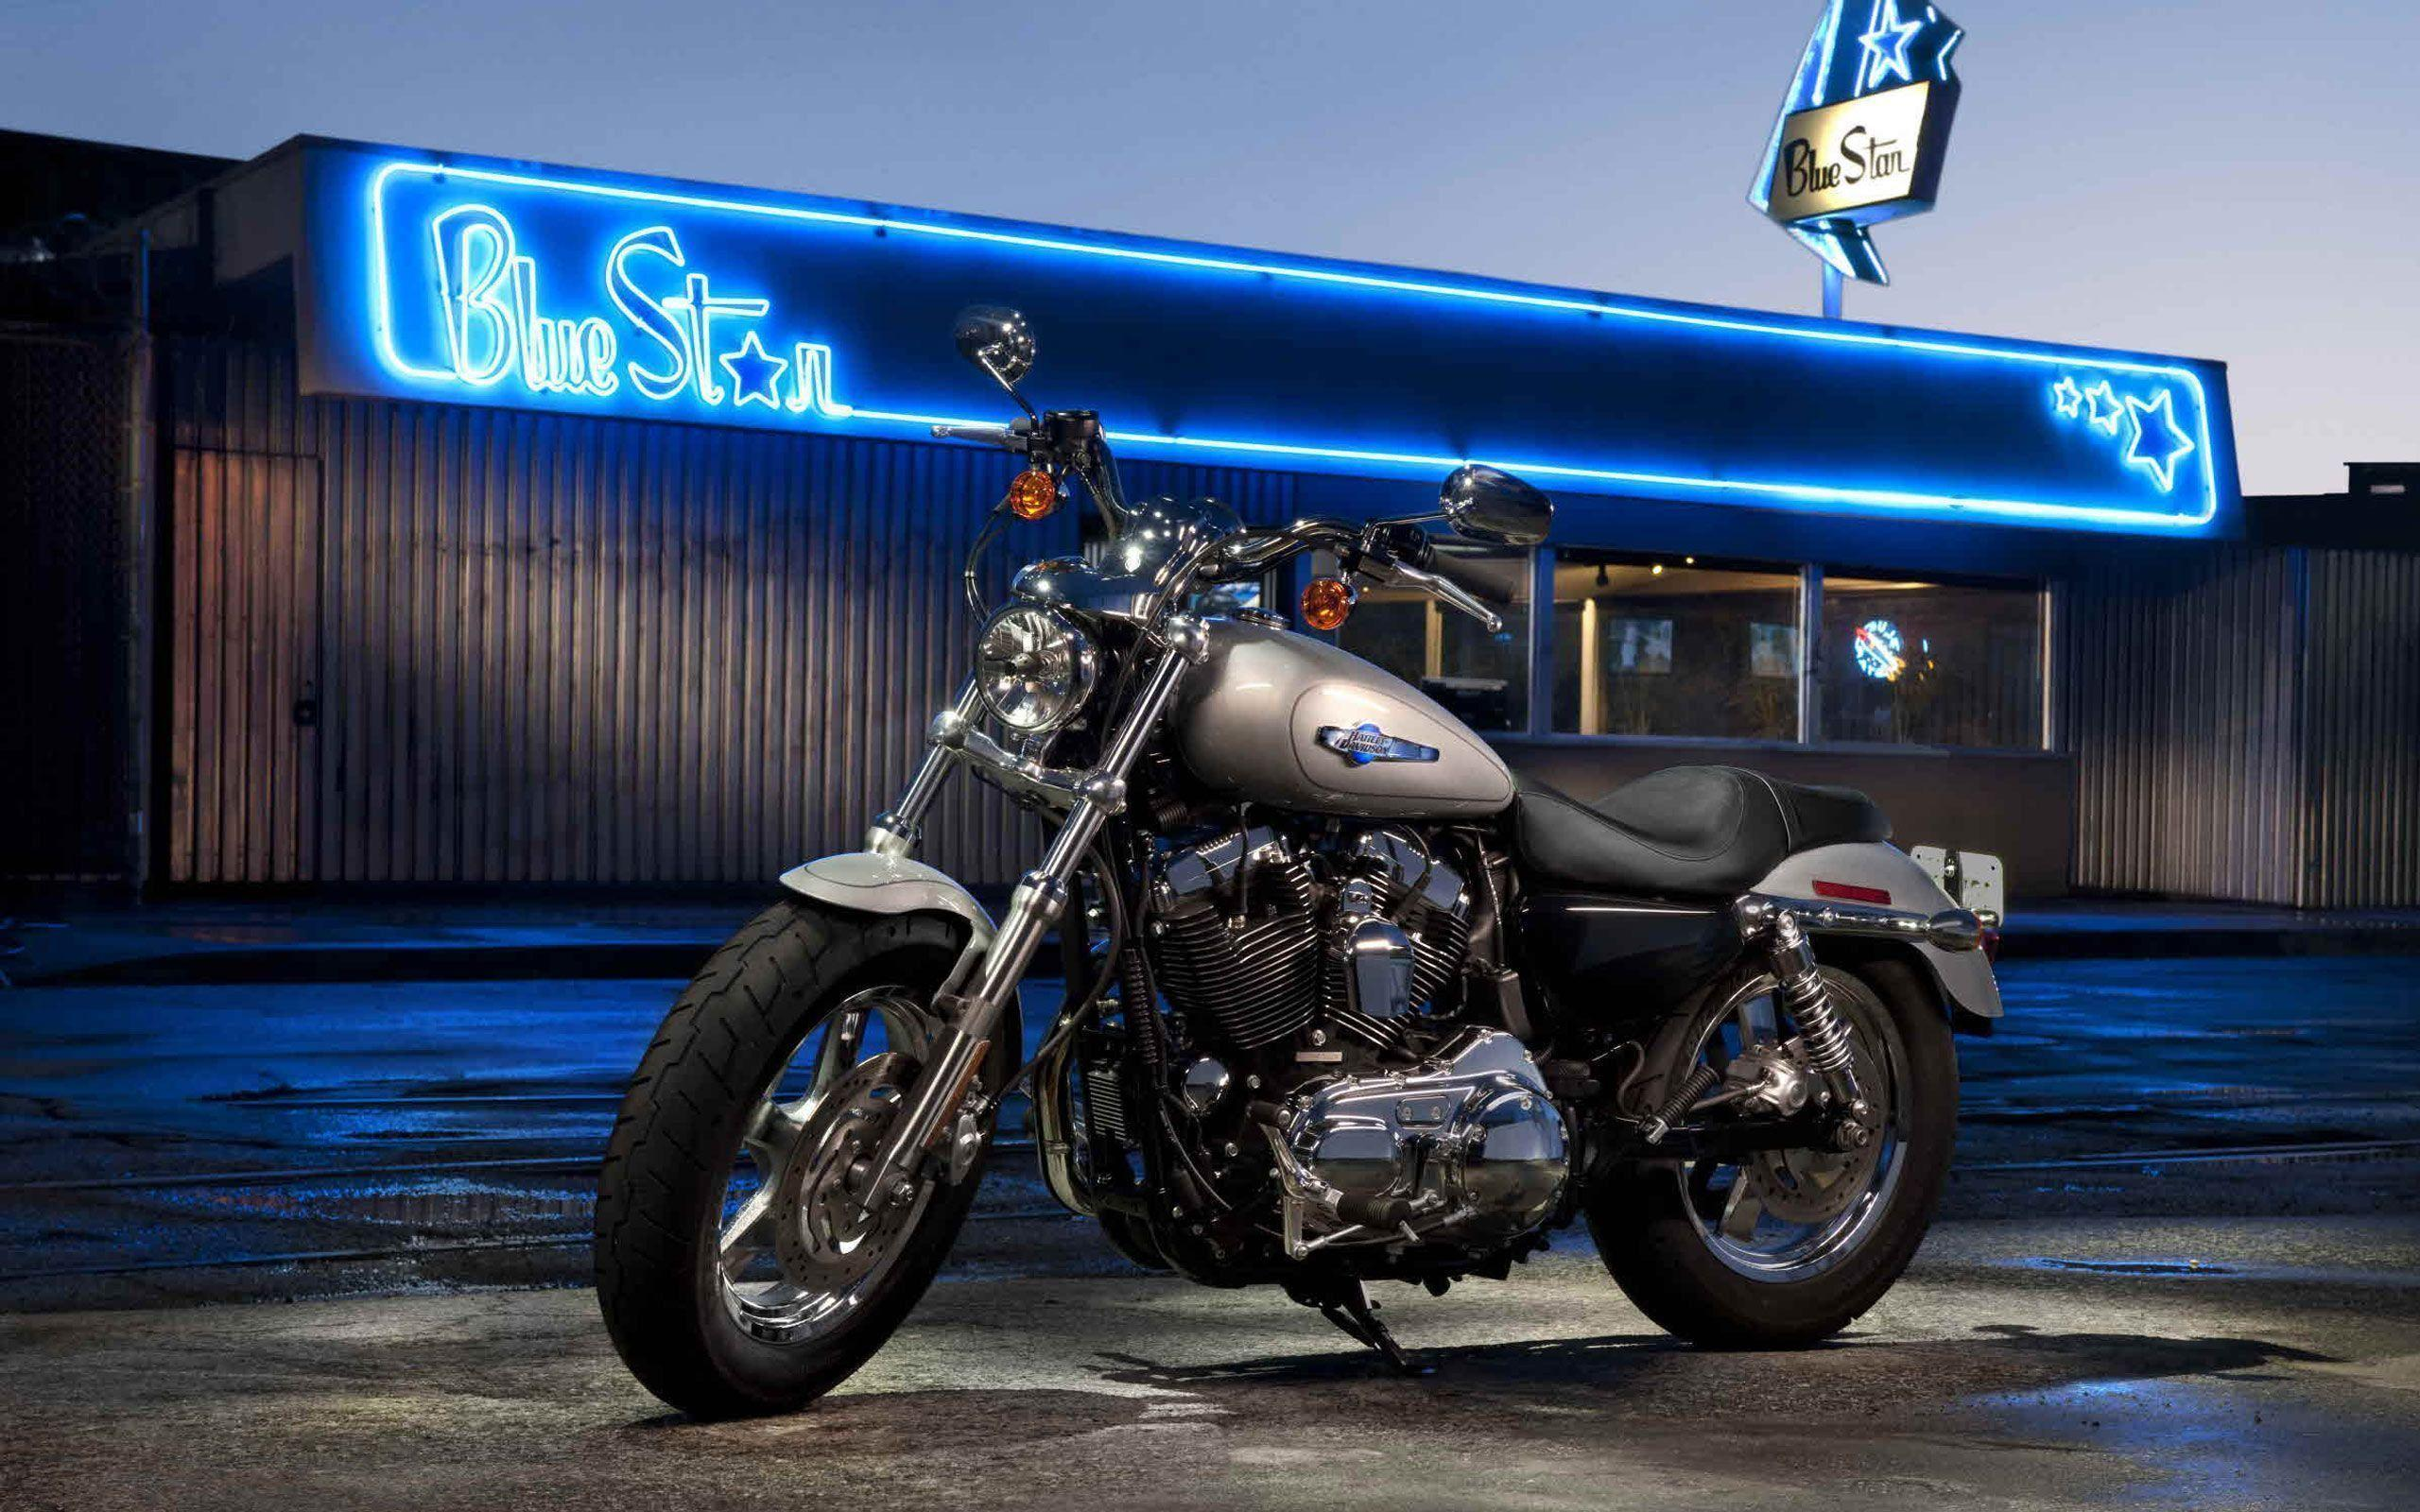 Free Download Harley Davidson Sportster Usd Hd Wallpaper Car Pictures